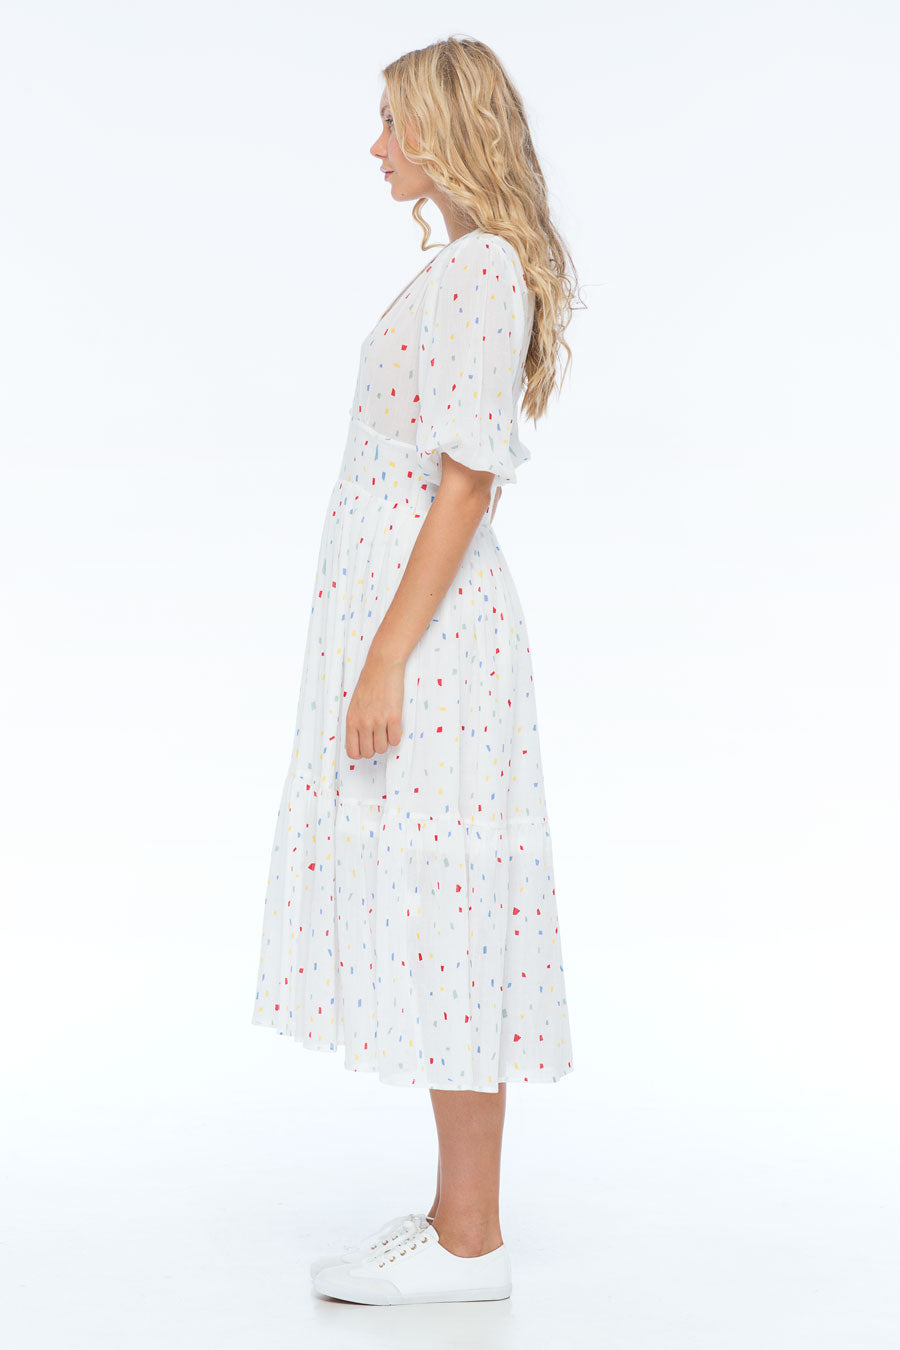 SAMIRA SHAPES MIDI DRESS